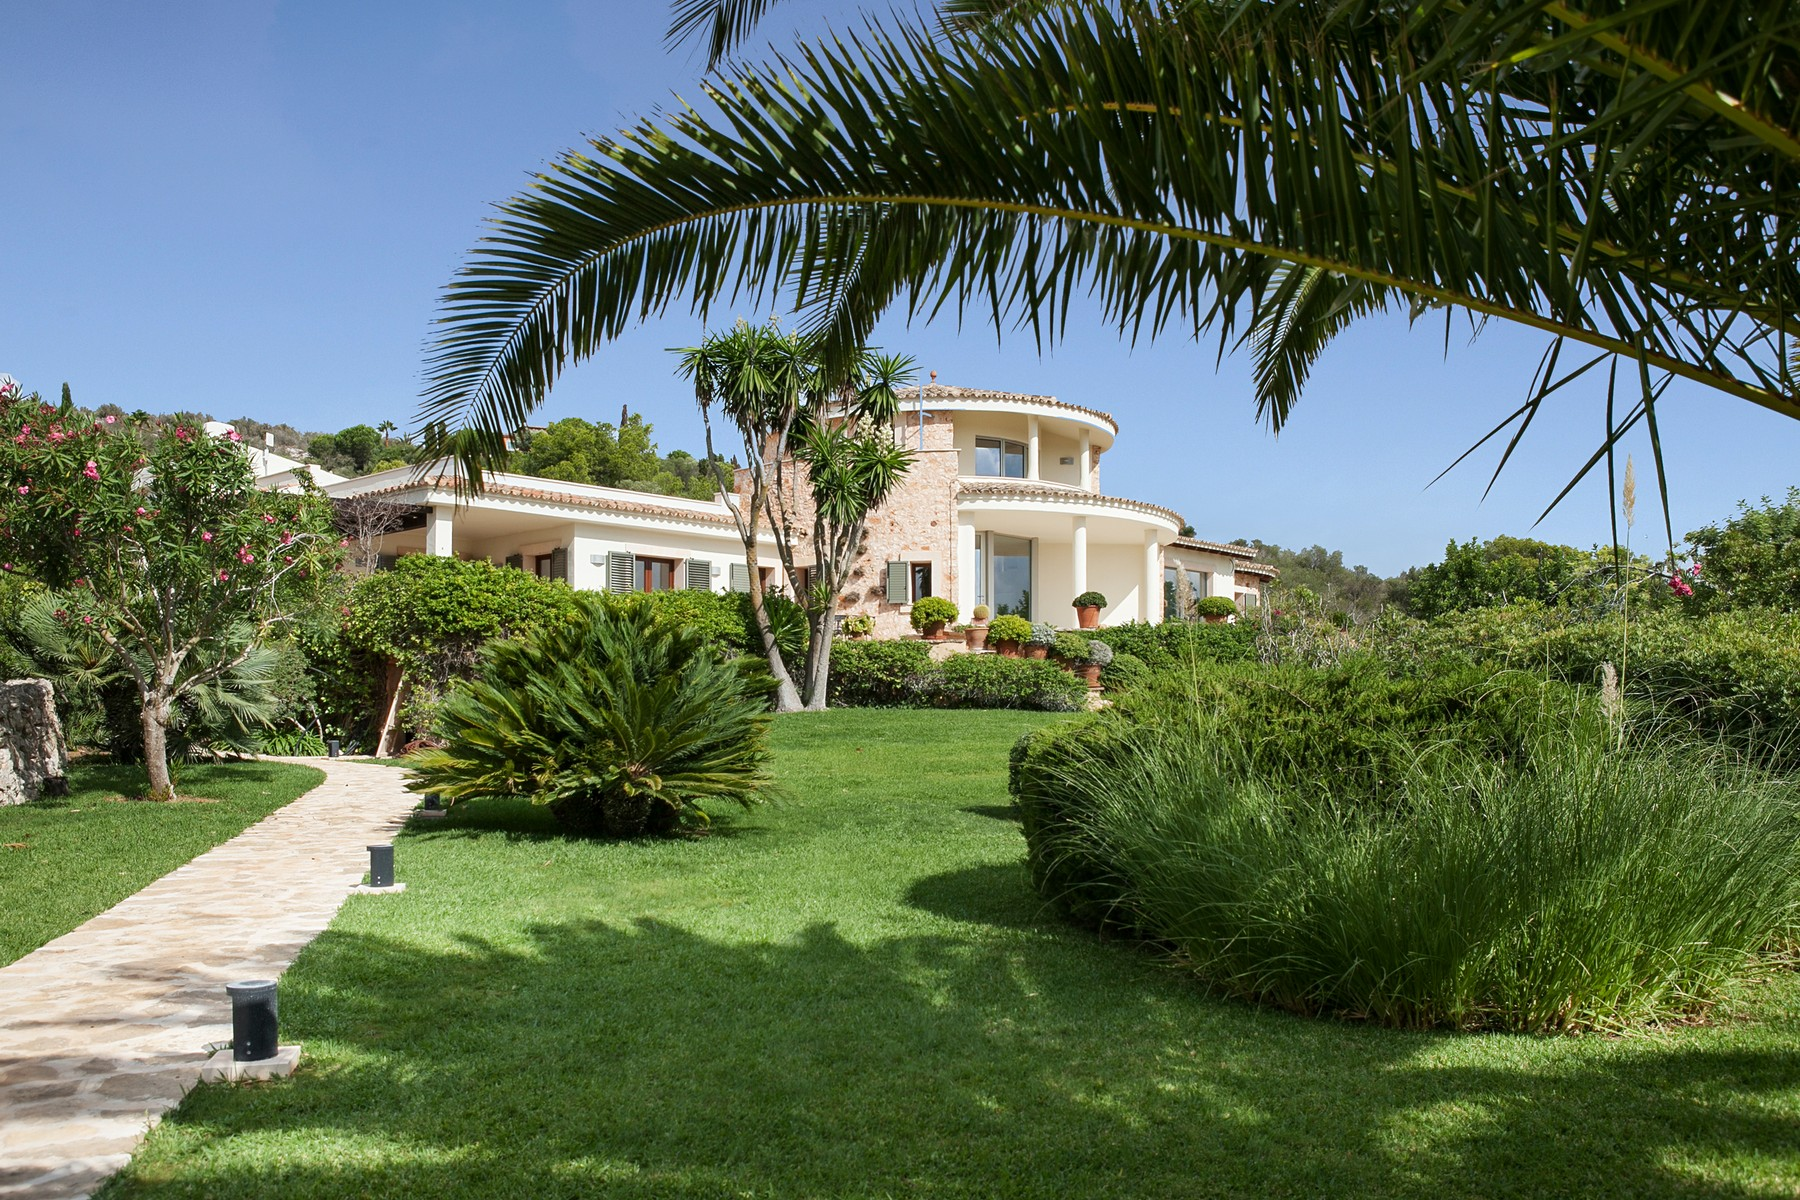 Casa Unifamiliar por un Venta en Country Estate with sea views near Porto Colom es caritxo, Porto Colom, Mallorca, 07669 España